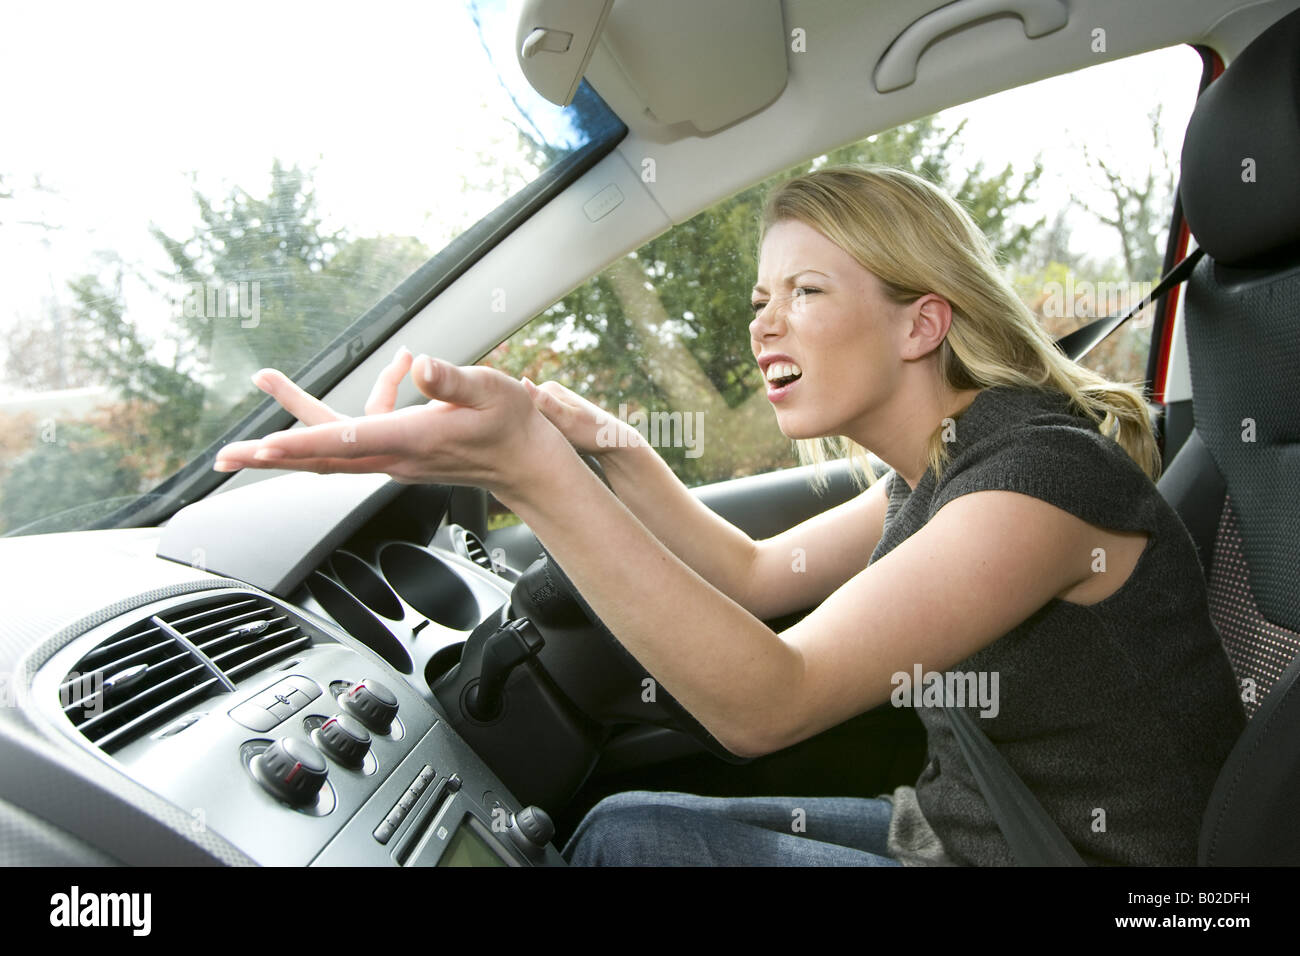 Woman complaining at other drivers - Stock Image